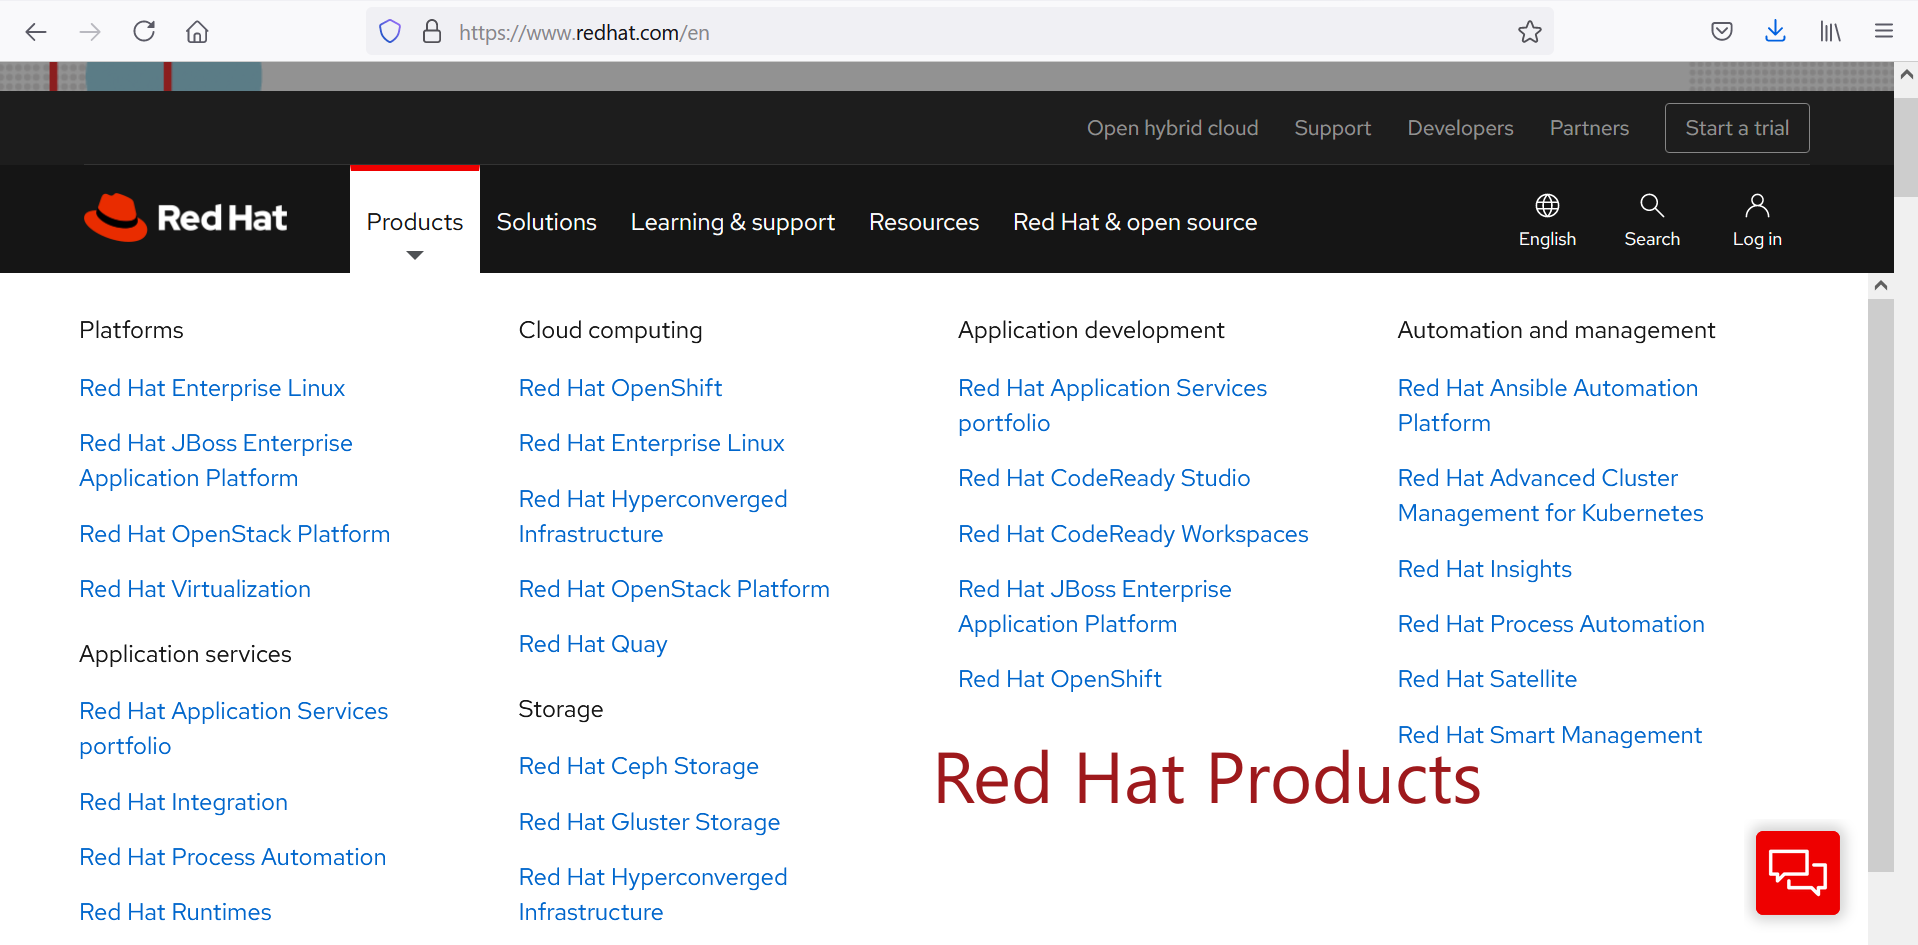 Red Hat Products